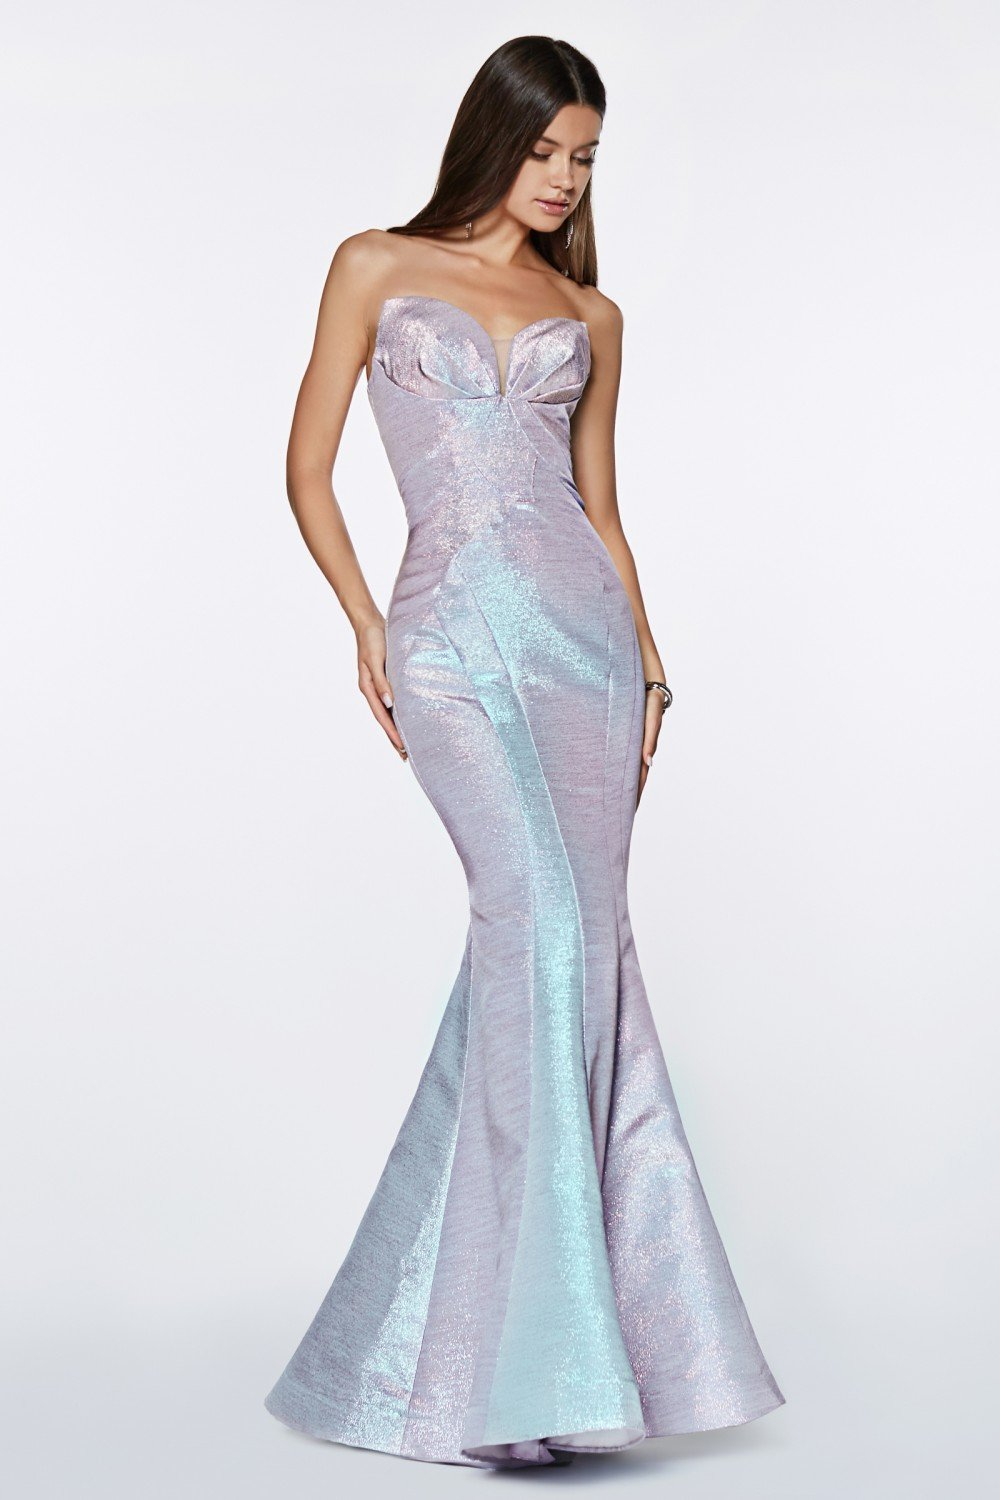 Opal Blue fitted strapless gown with metallic iridescent fabric.